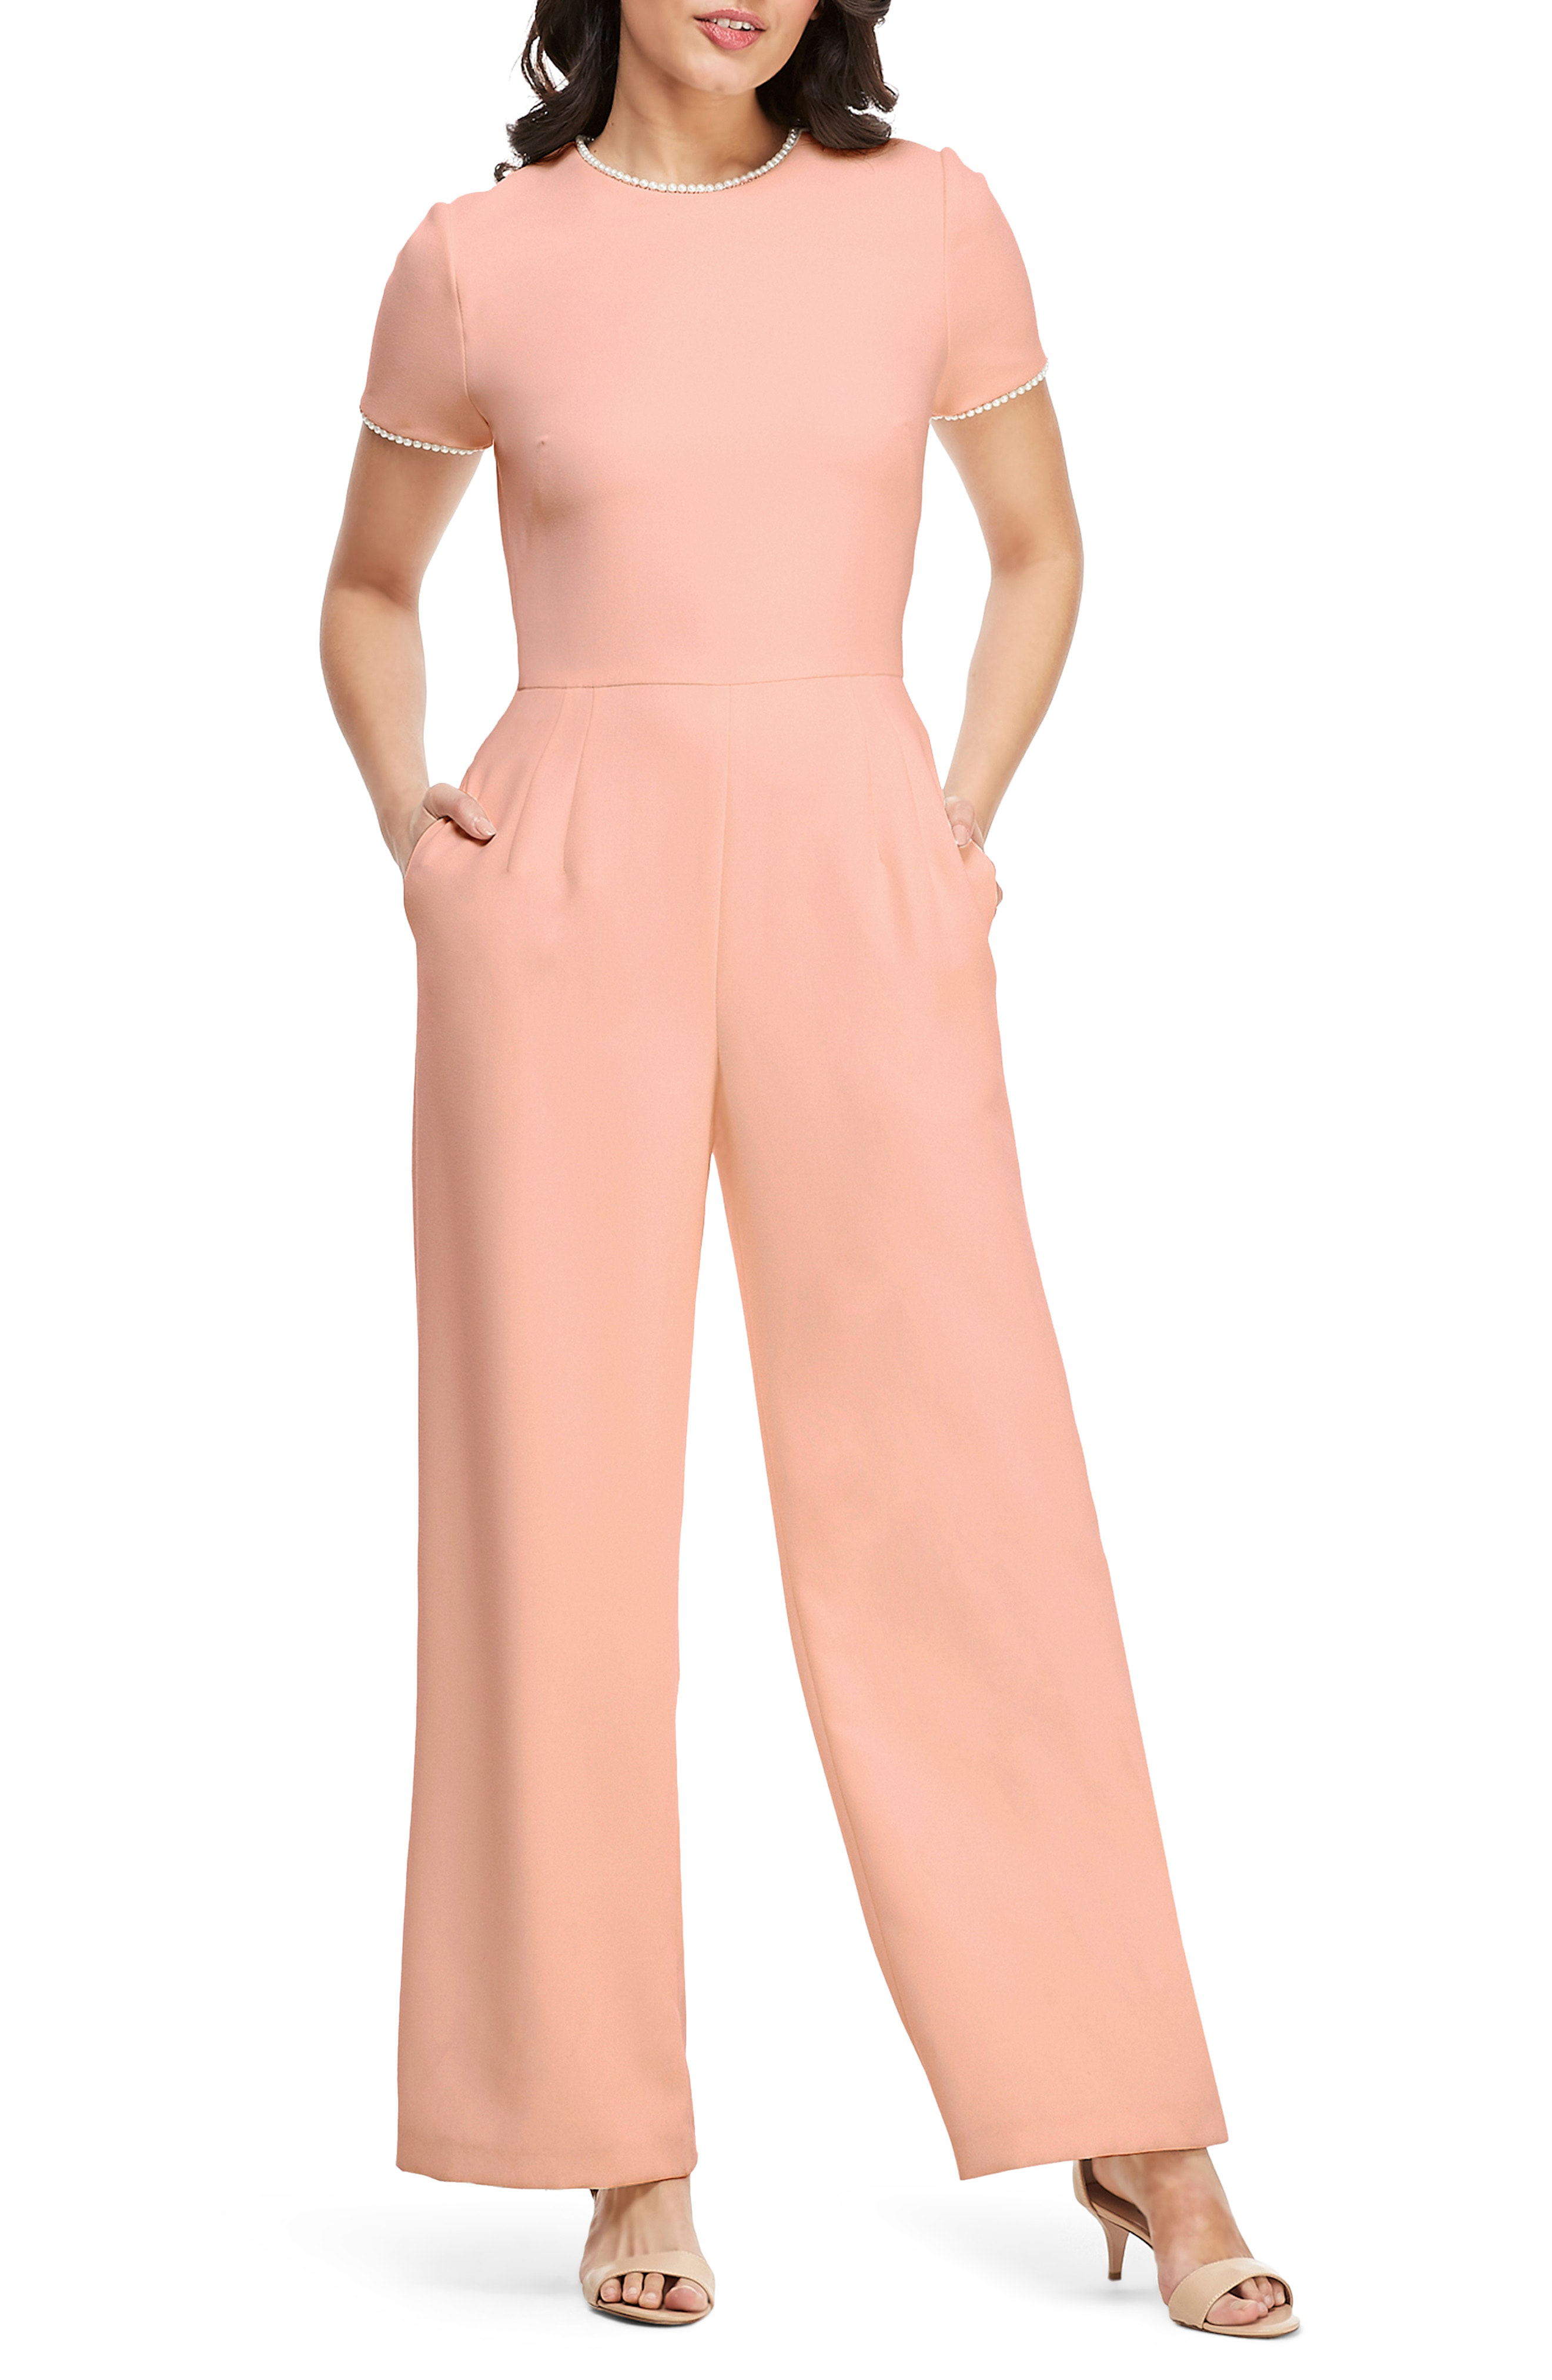 Gal Meets Glam Collection Pearl Trim Jumpsuit In Puff Pink | ModeSens